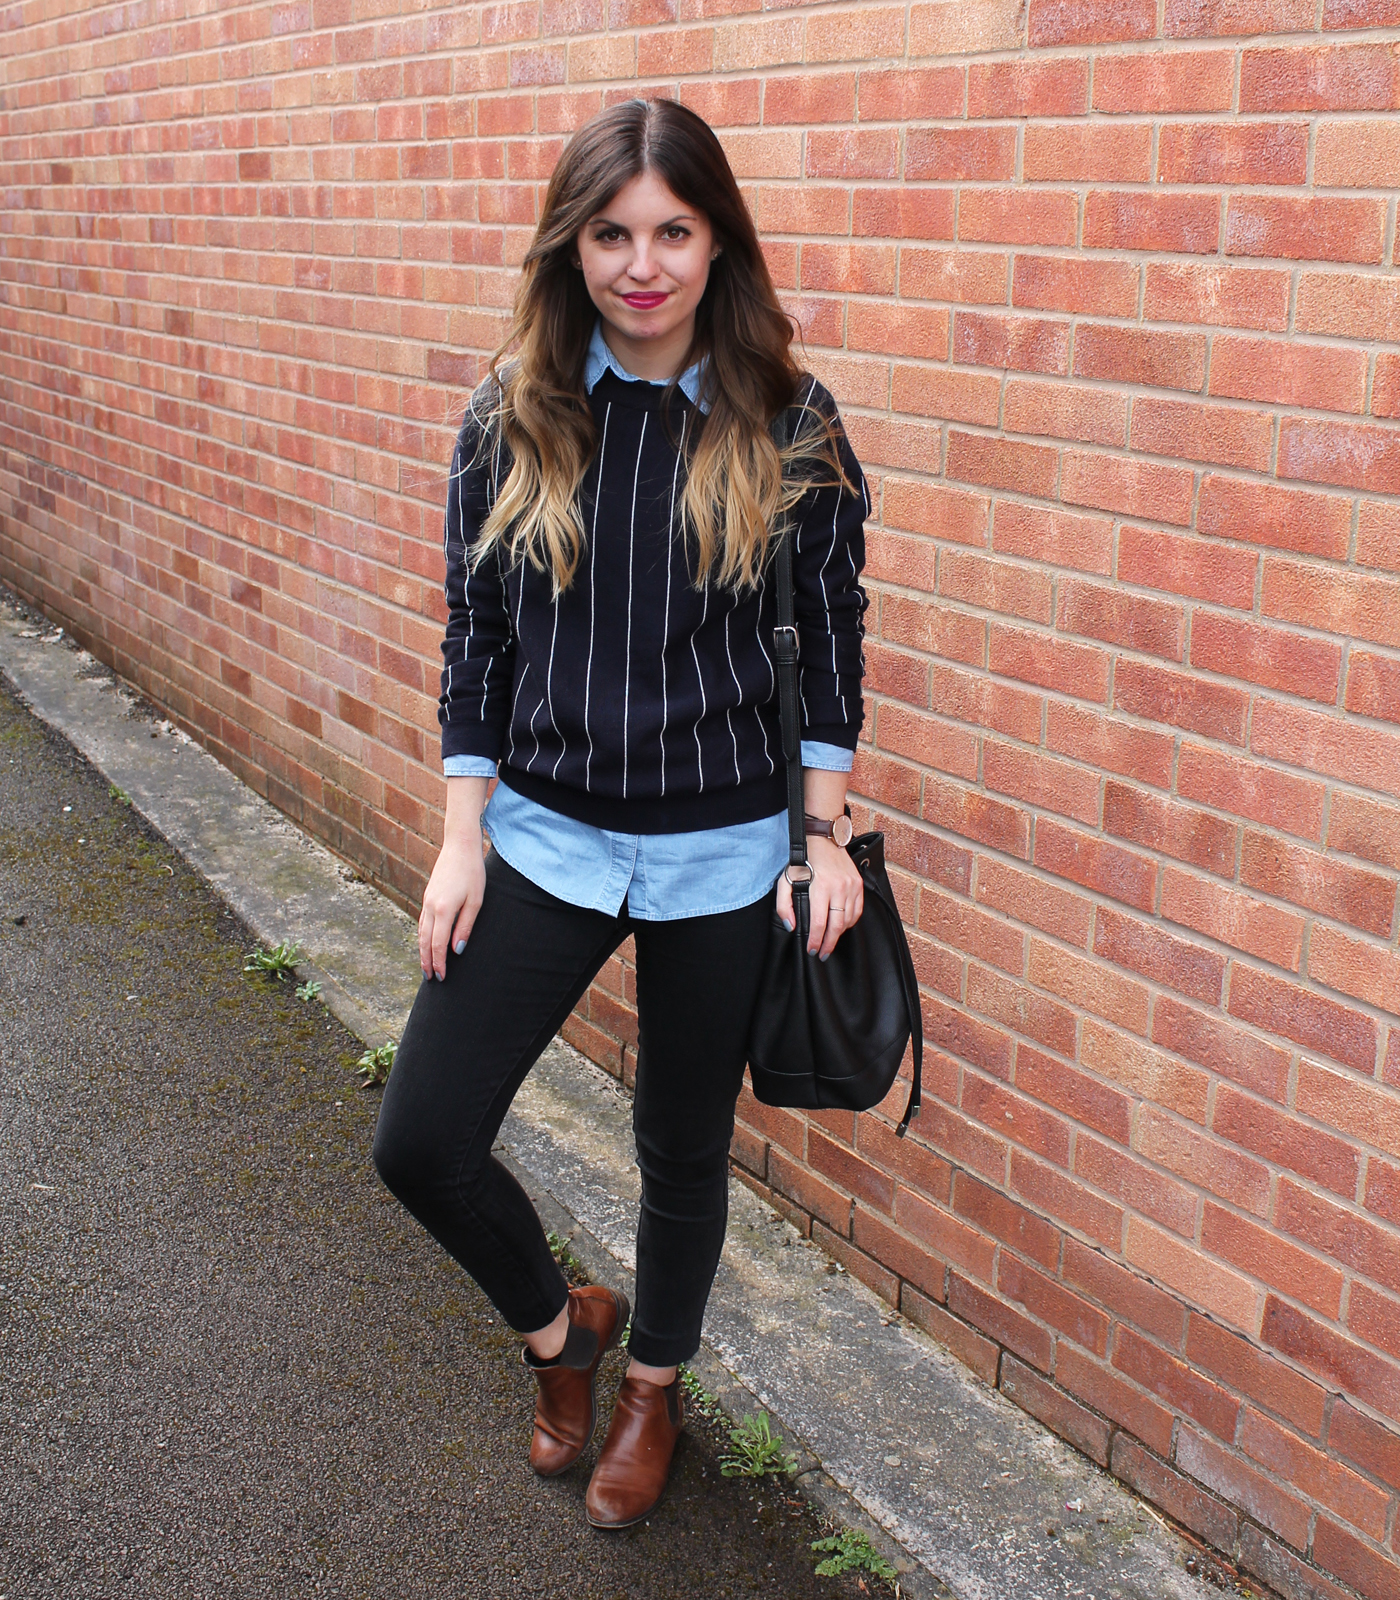 Sweet Monday, Sweet Monday blog, Outfit, ootd